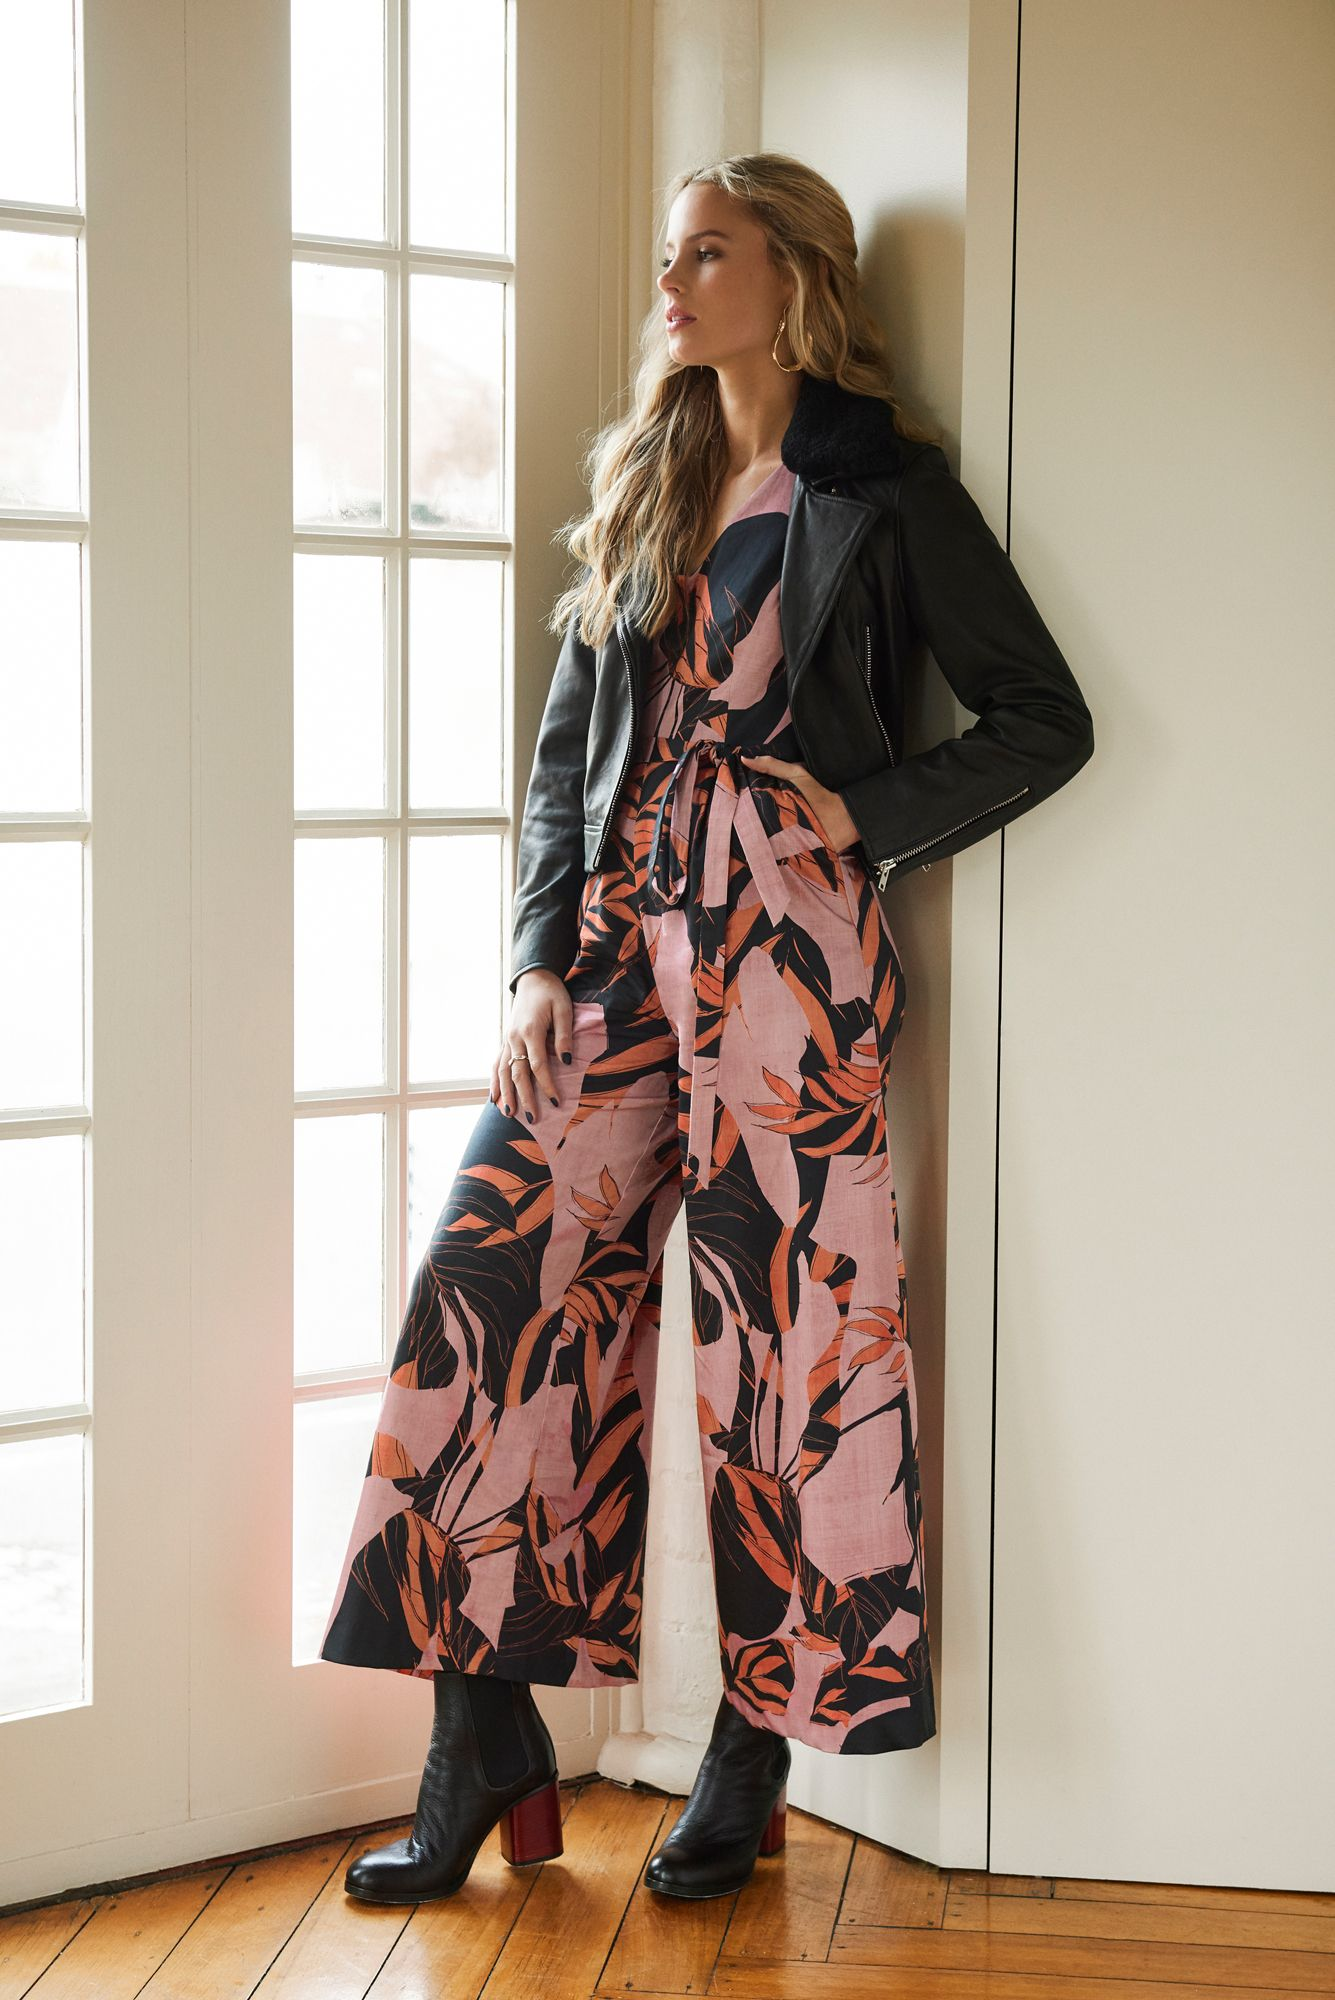 Mesop James Leather Jacket Noir Print Jumpsuit Autumn 2018 Designed In Melbourne Since 2015 Available In Boutiques A How To Wear Clothes For Women Mesop